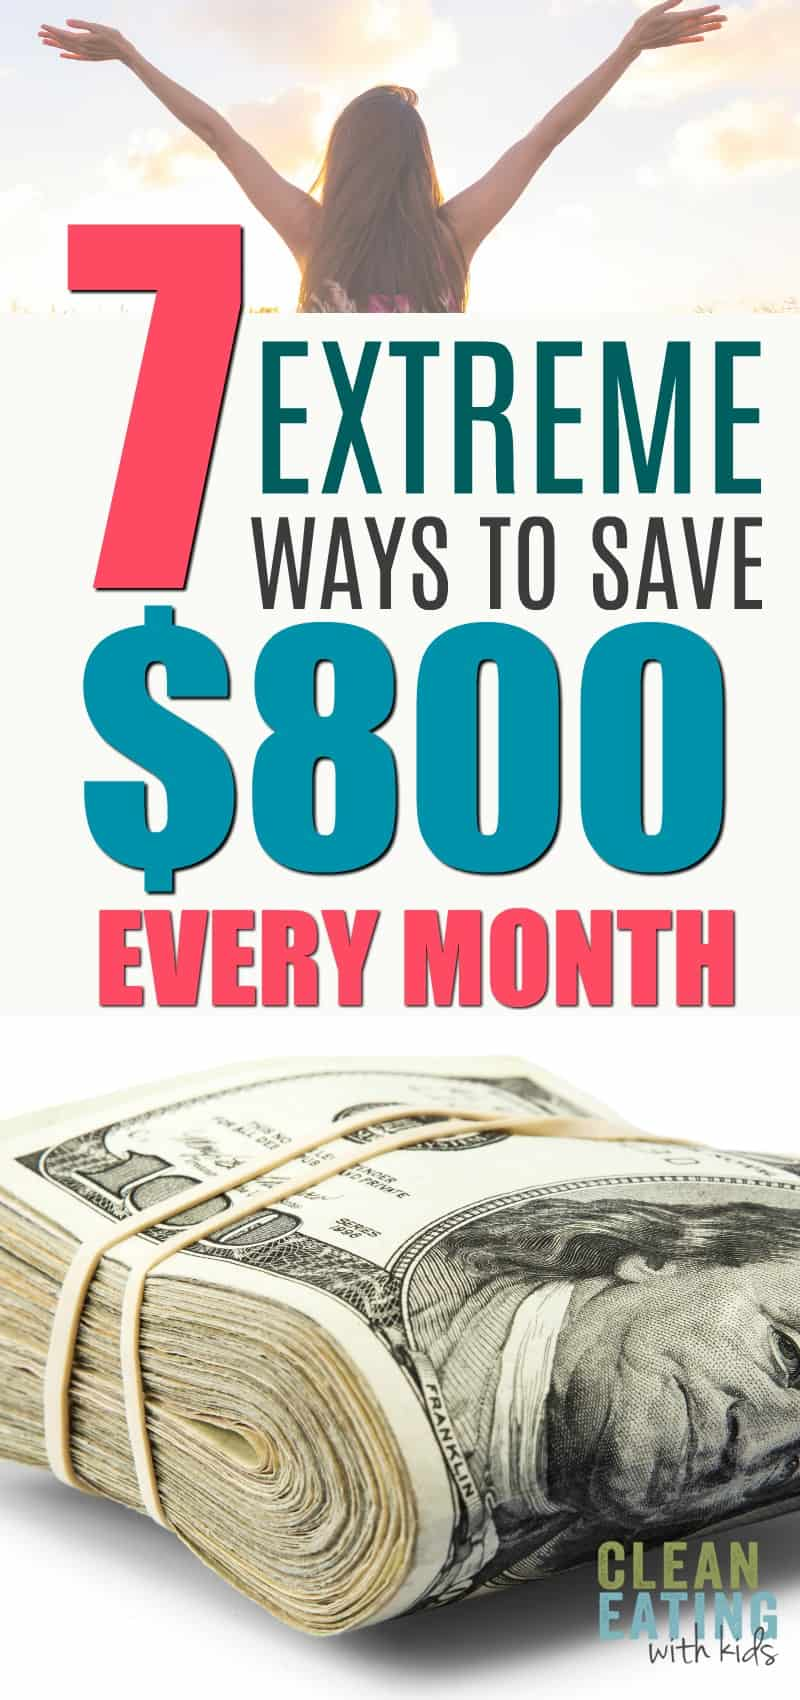 Need to Cut Costs Urgently? 7 drastic ways to save $800 per month.